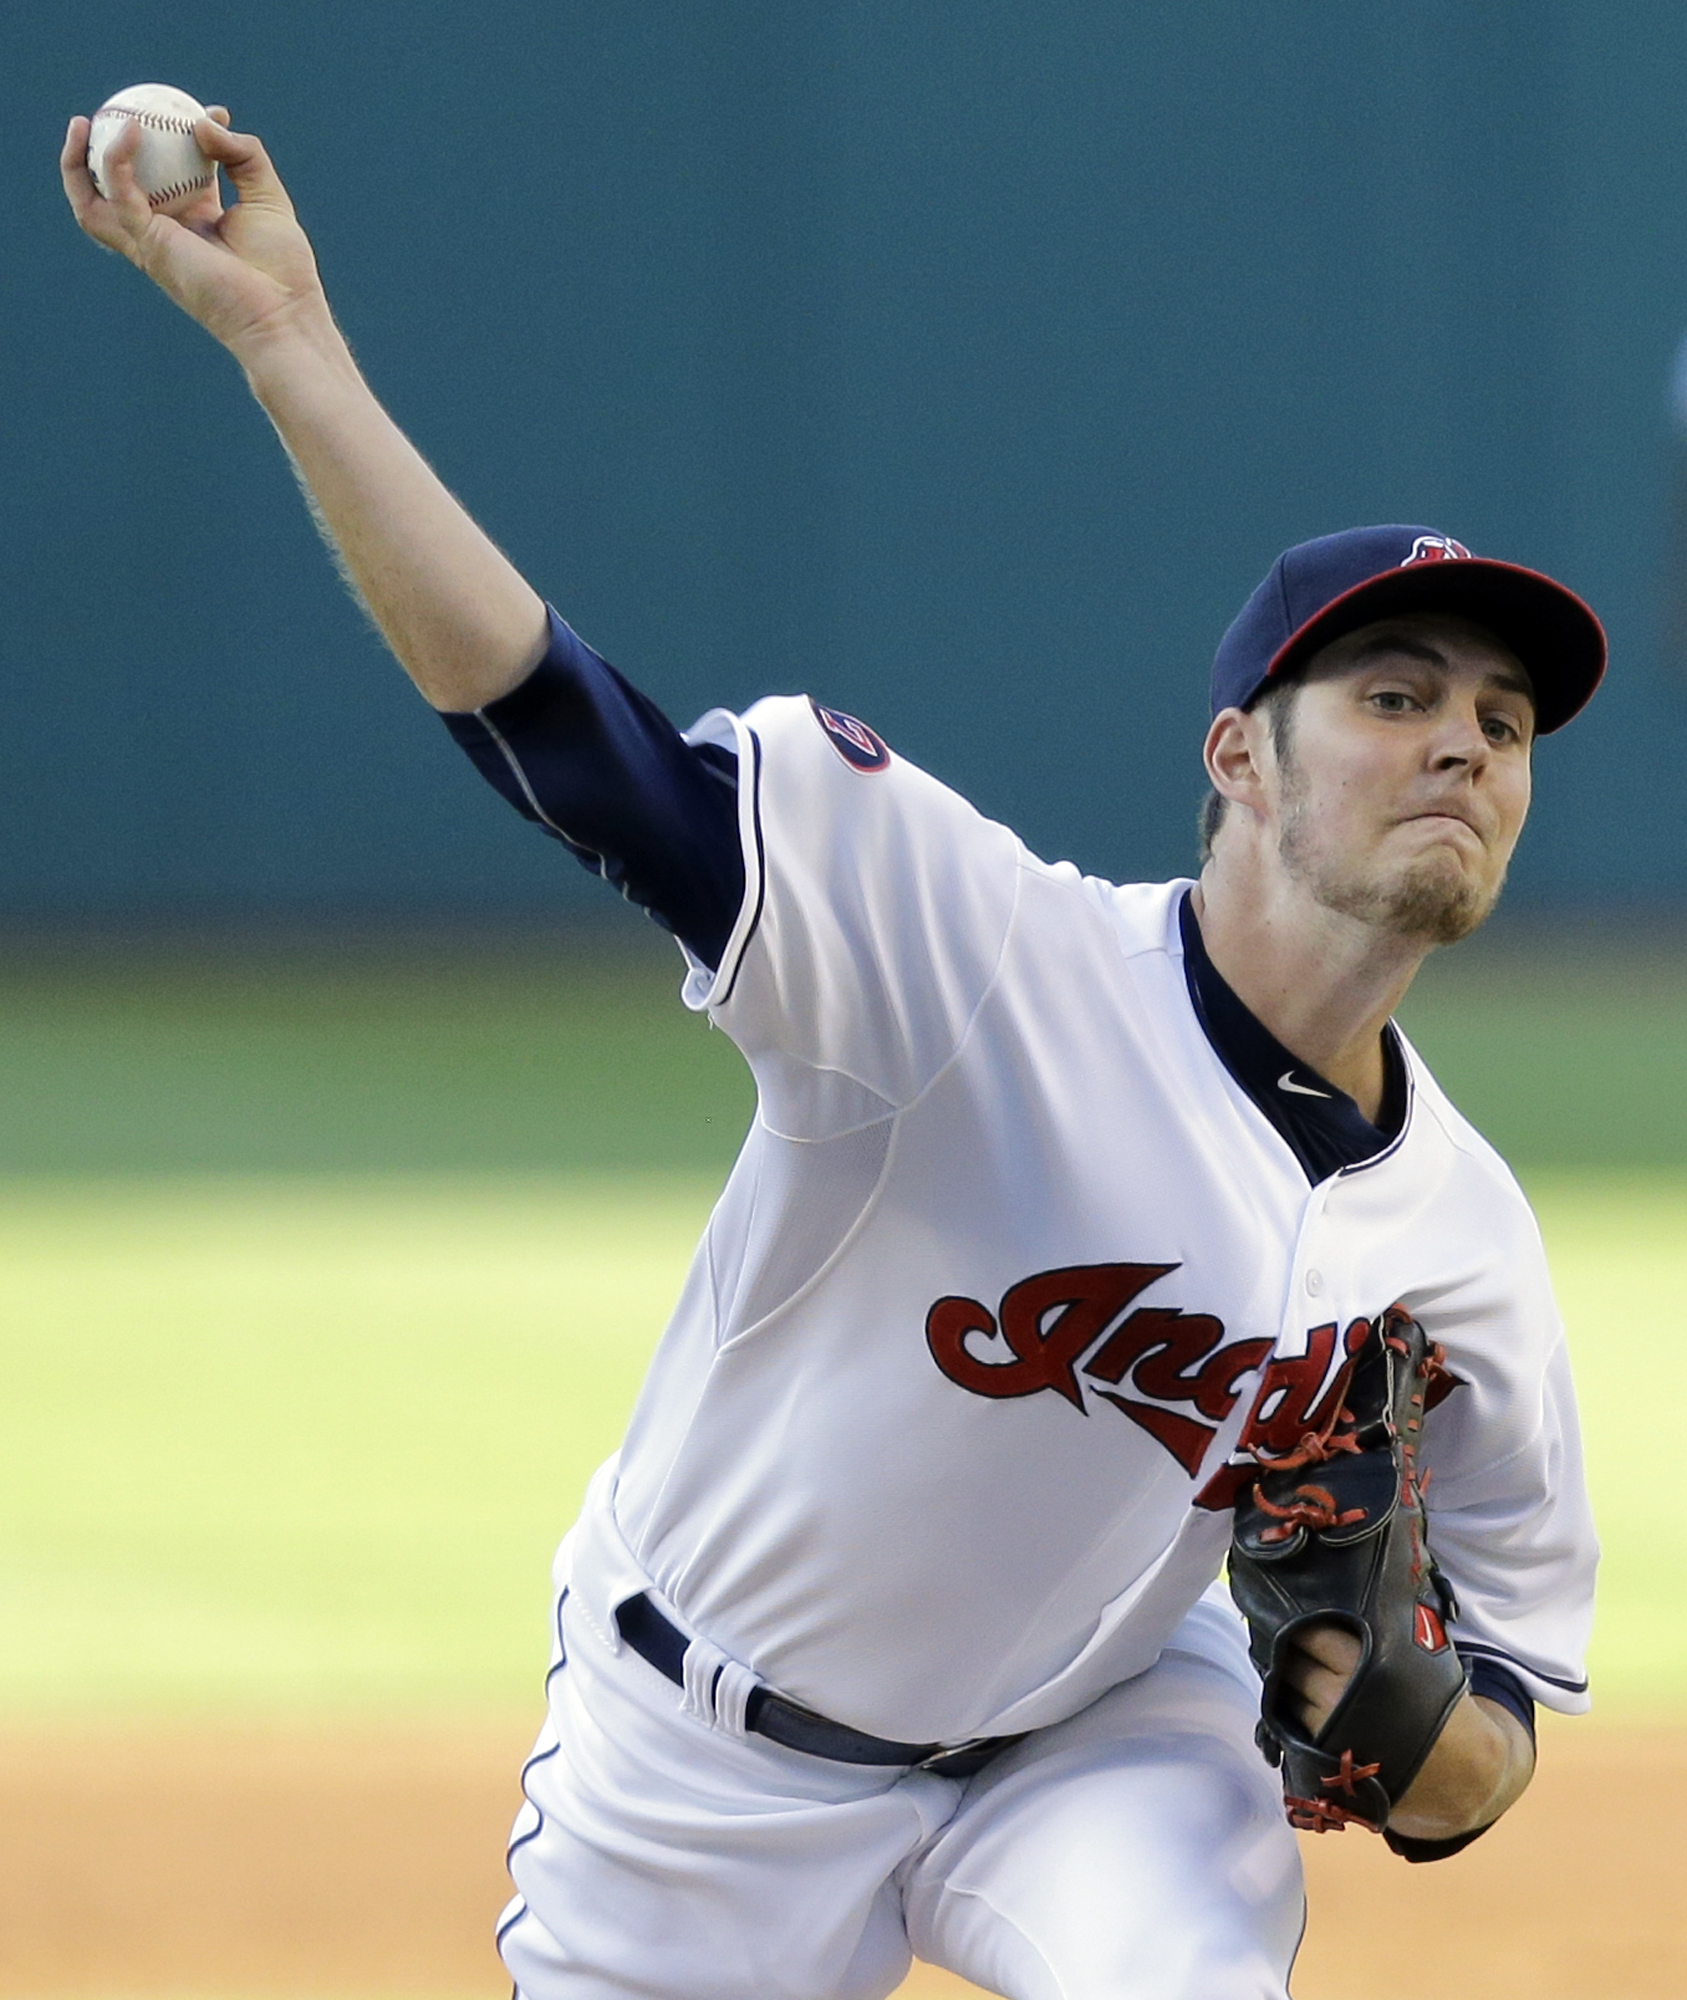 Cleveland Indians starting pitcher Trevor Bauer delivers in the first inning of a baseball game against the Chicago White Sox, Thursday, July 23, 2015, in Cleveland. (AP Photo/Tony Dejak)